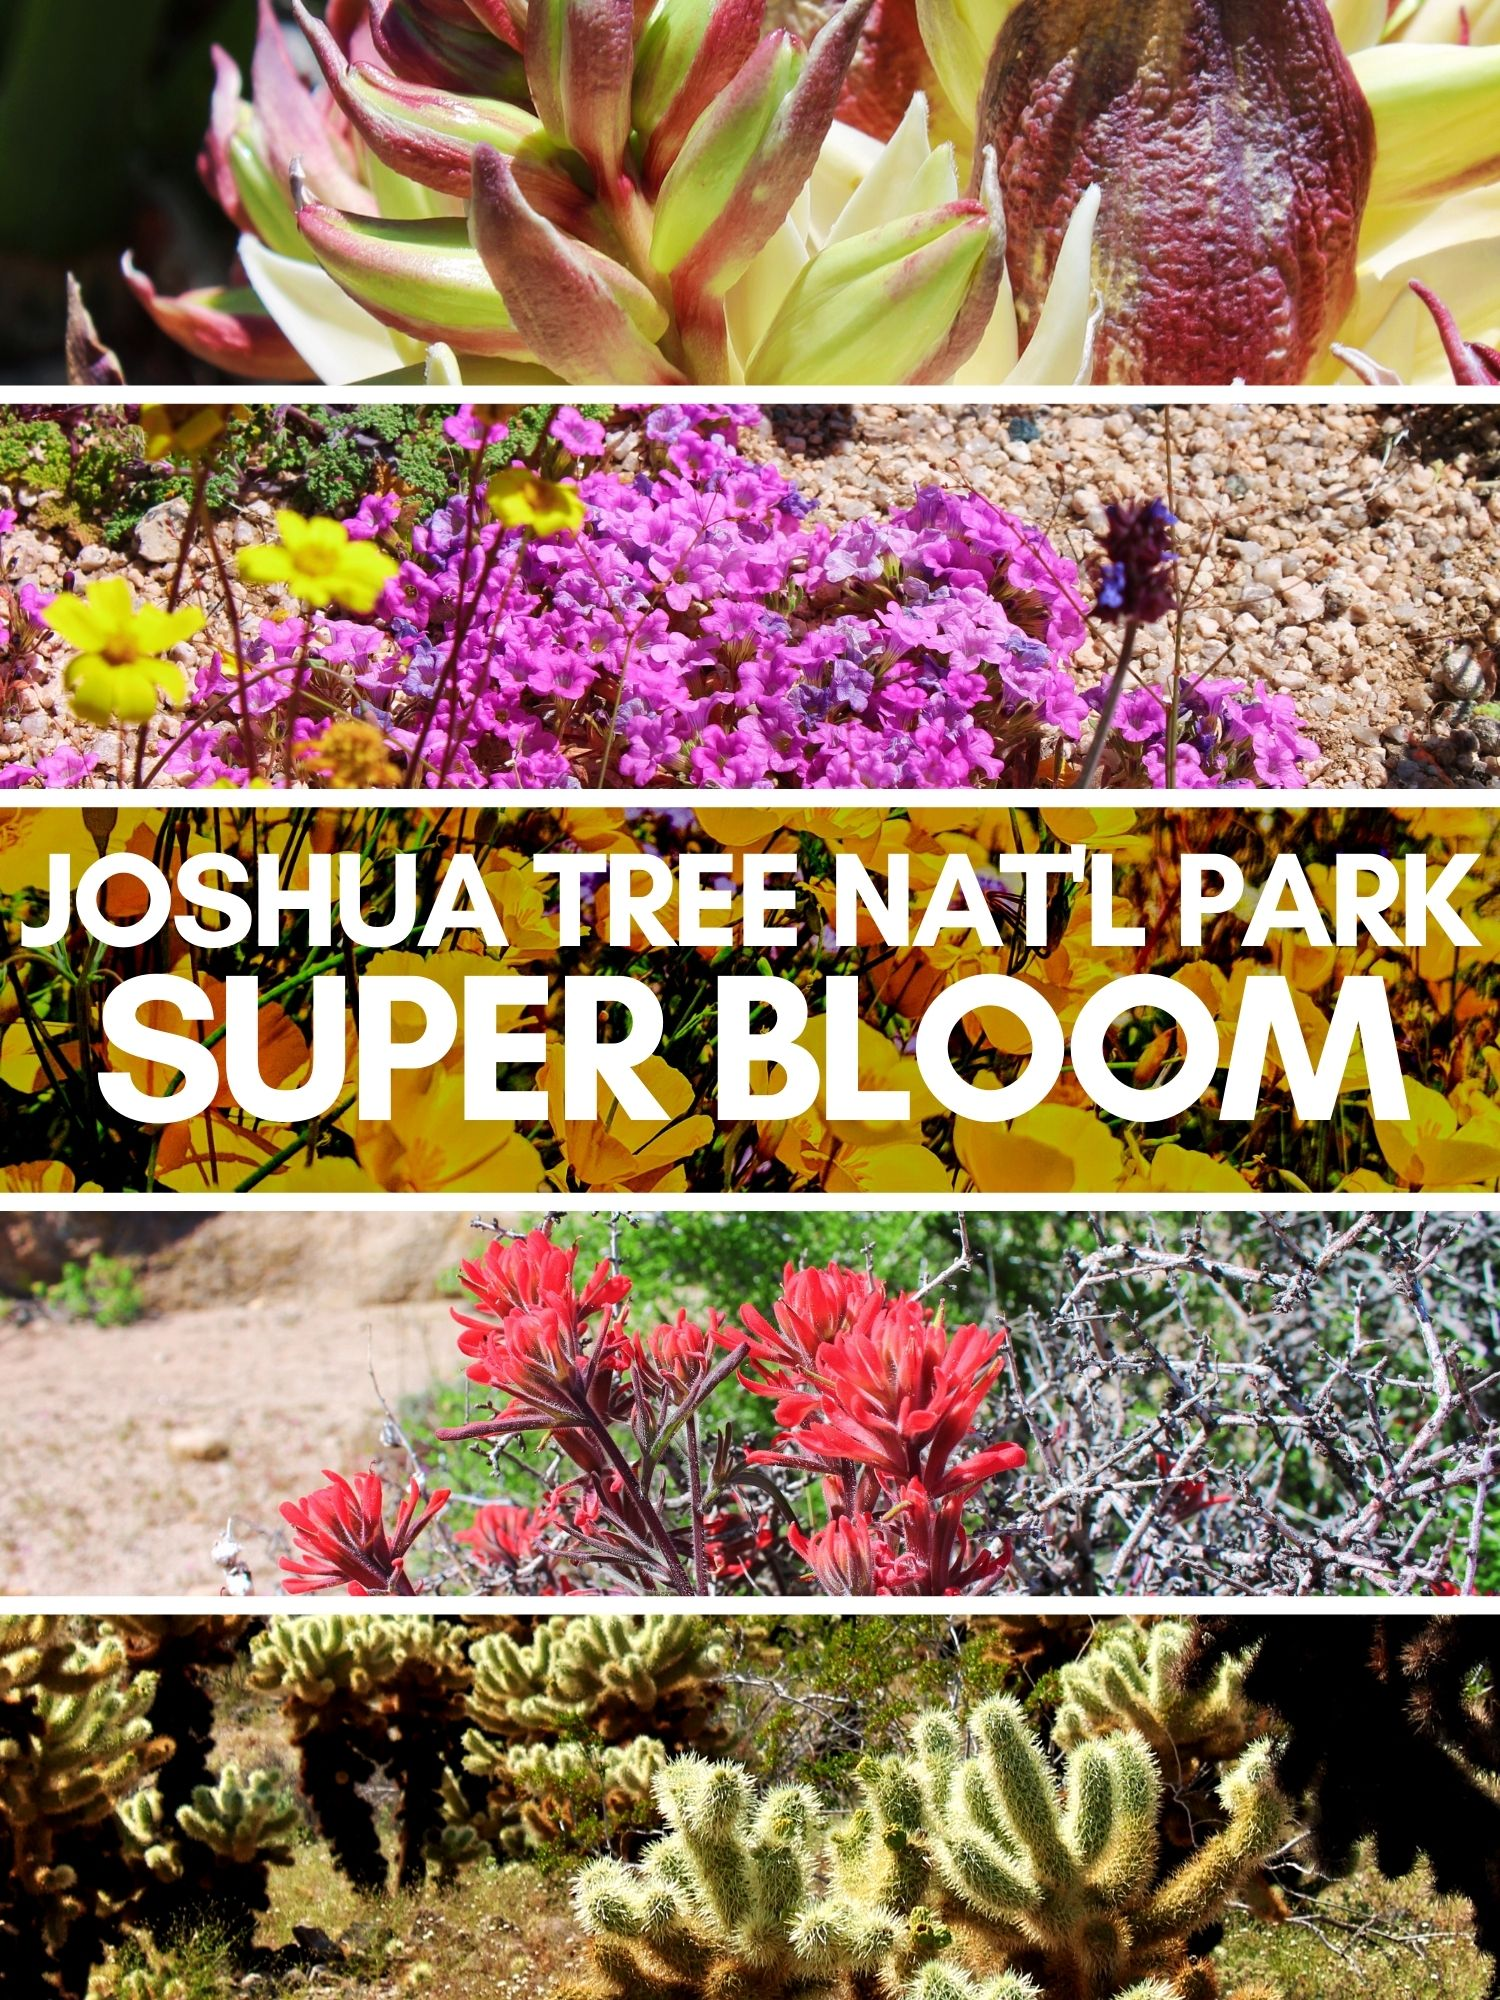 Joshua Tree National Park is incredible during the super bloom. Great for hiking and bouldering year round, Joshua Tree is very unique, particularly when California poppies, yucca and cactus bloom. Hikes, day trip plan and more.